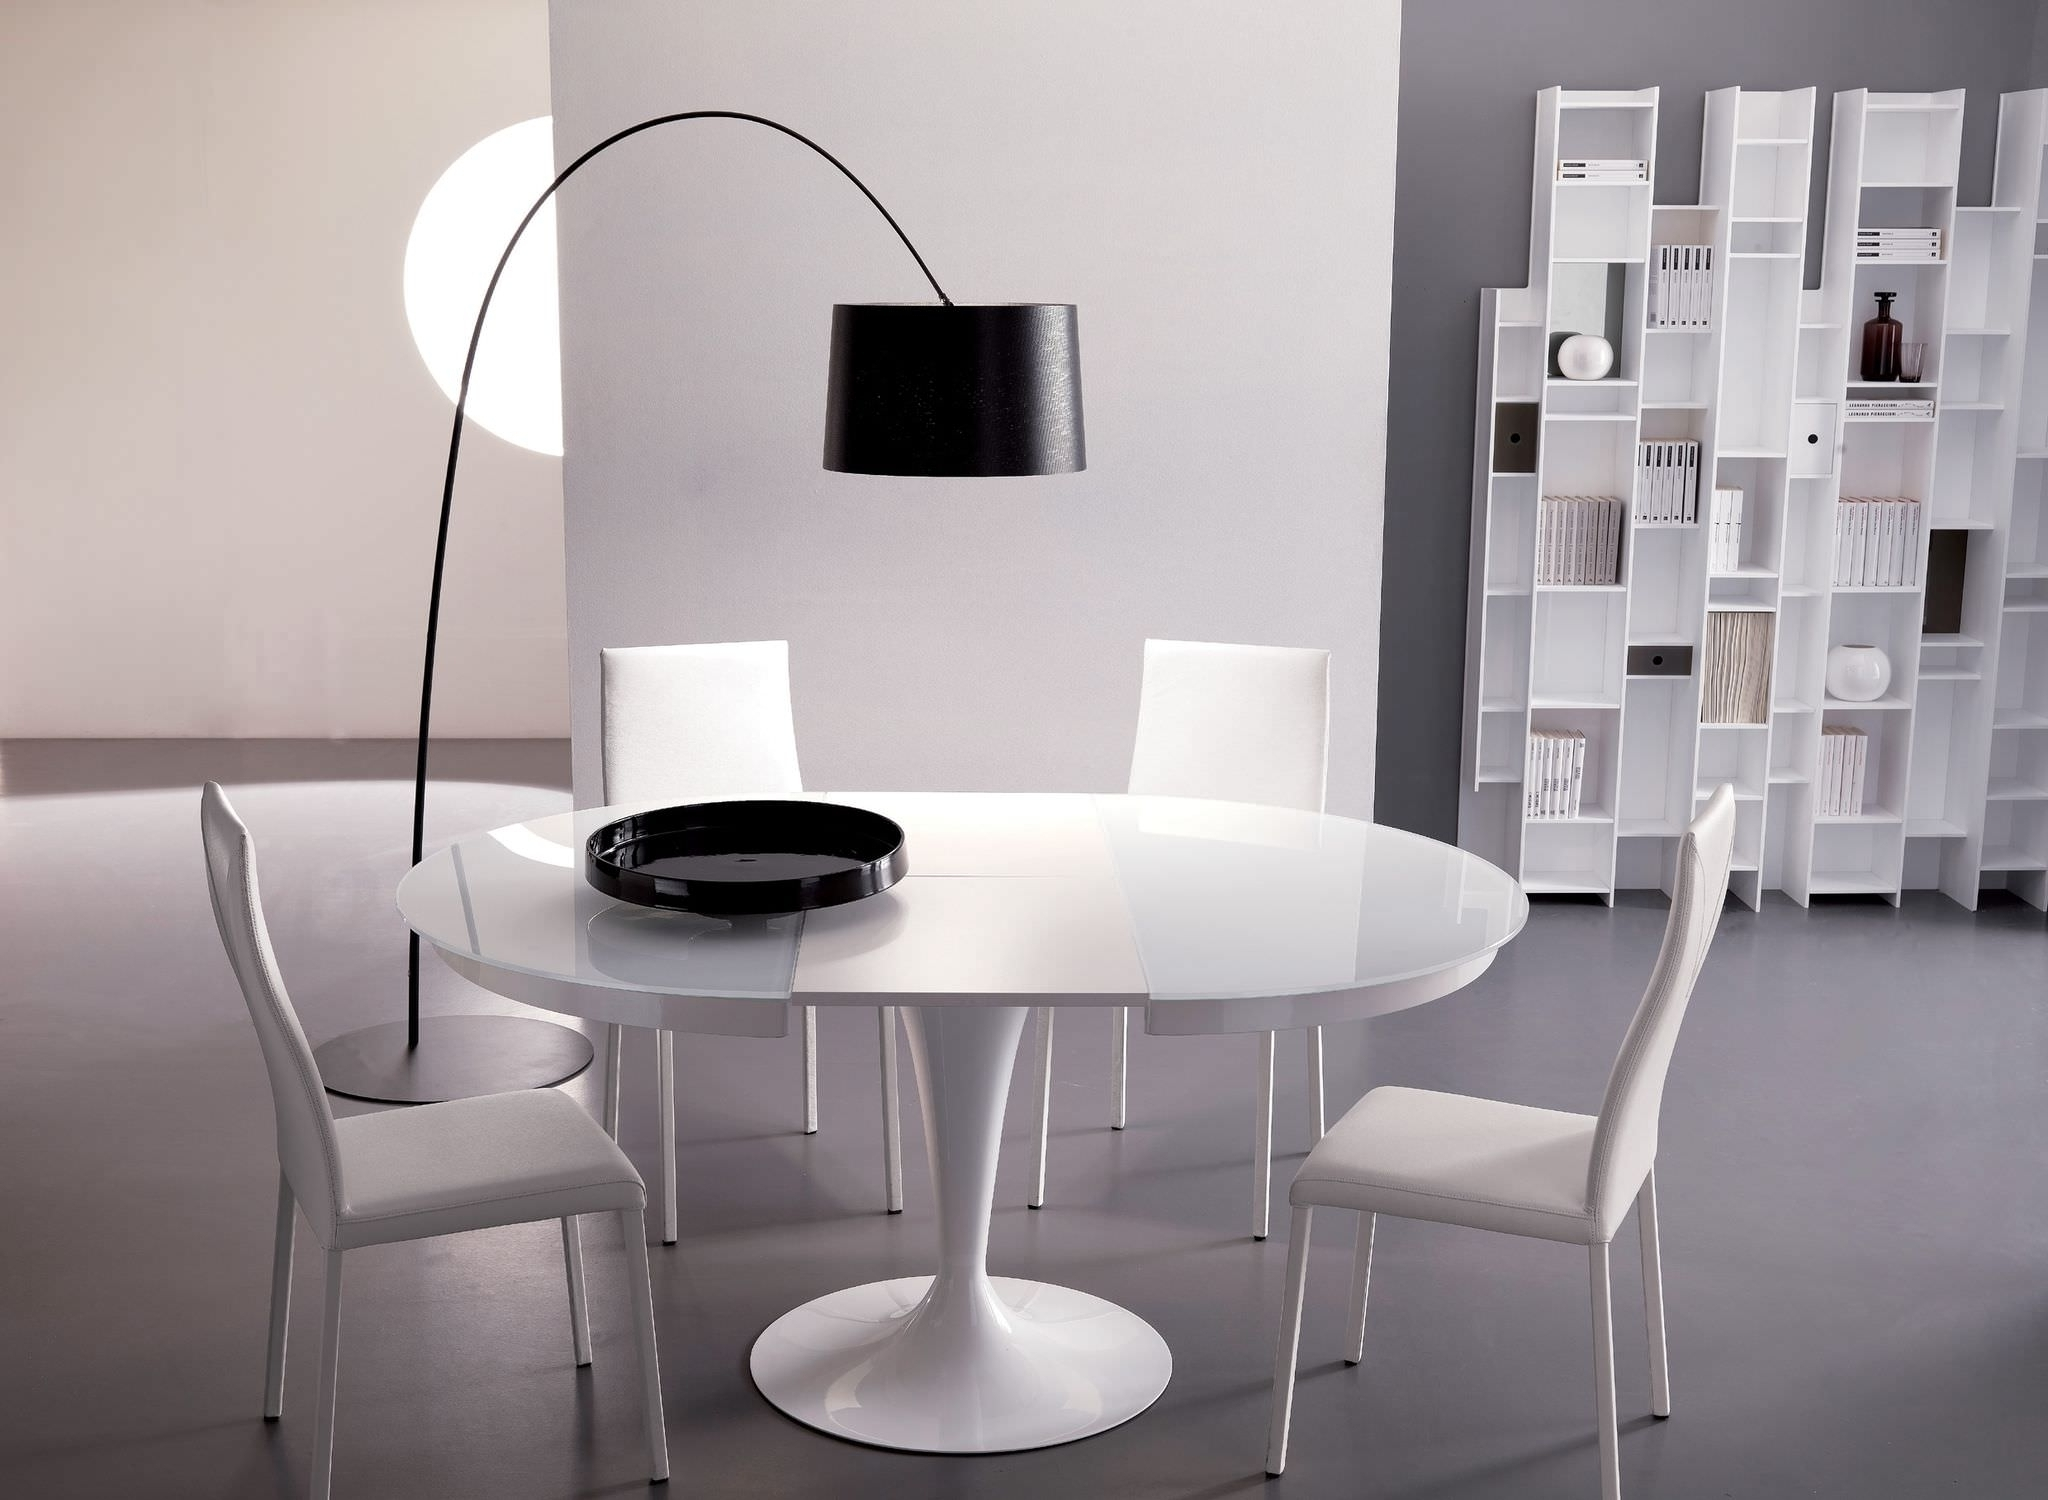 Most Popular Dining Tables: Glamorous Round Dining Table Extends To Oval Oval Regarding Round Dining Tables Extends To Oval (View 11 of 25)